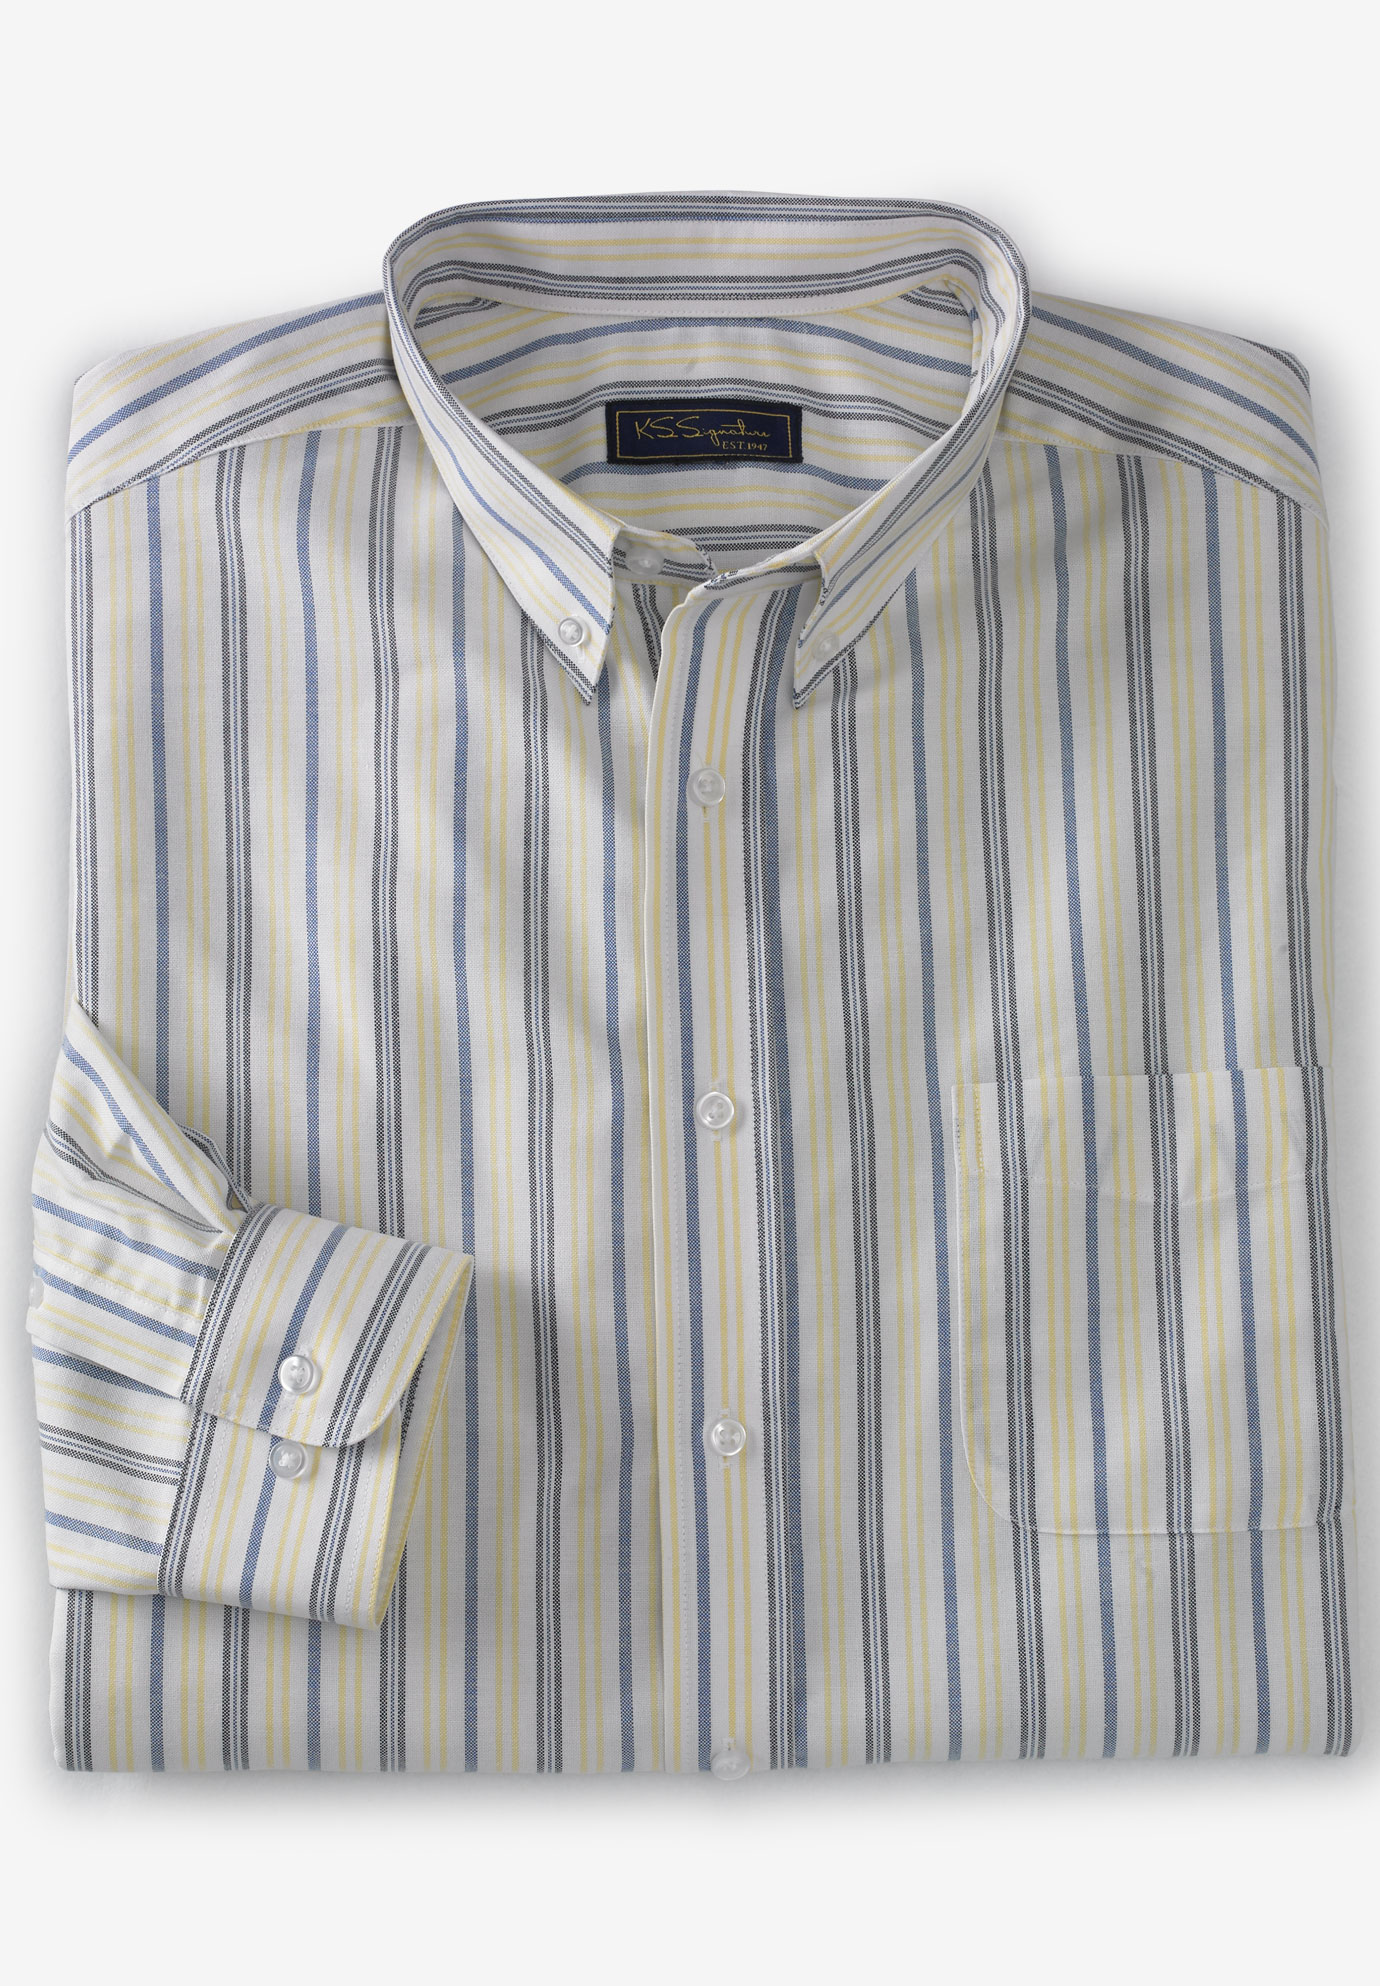 Wrinkle-Resistant Oxford Dress Shirt by KS Signature,